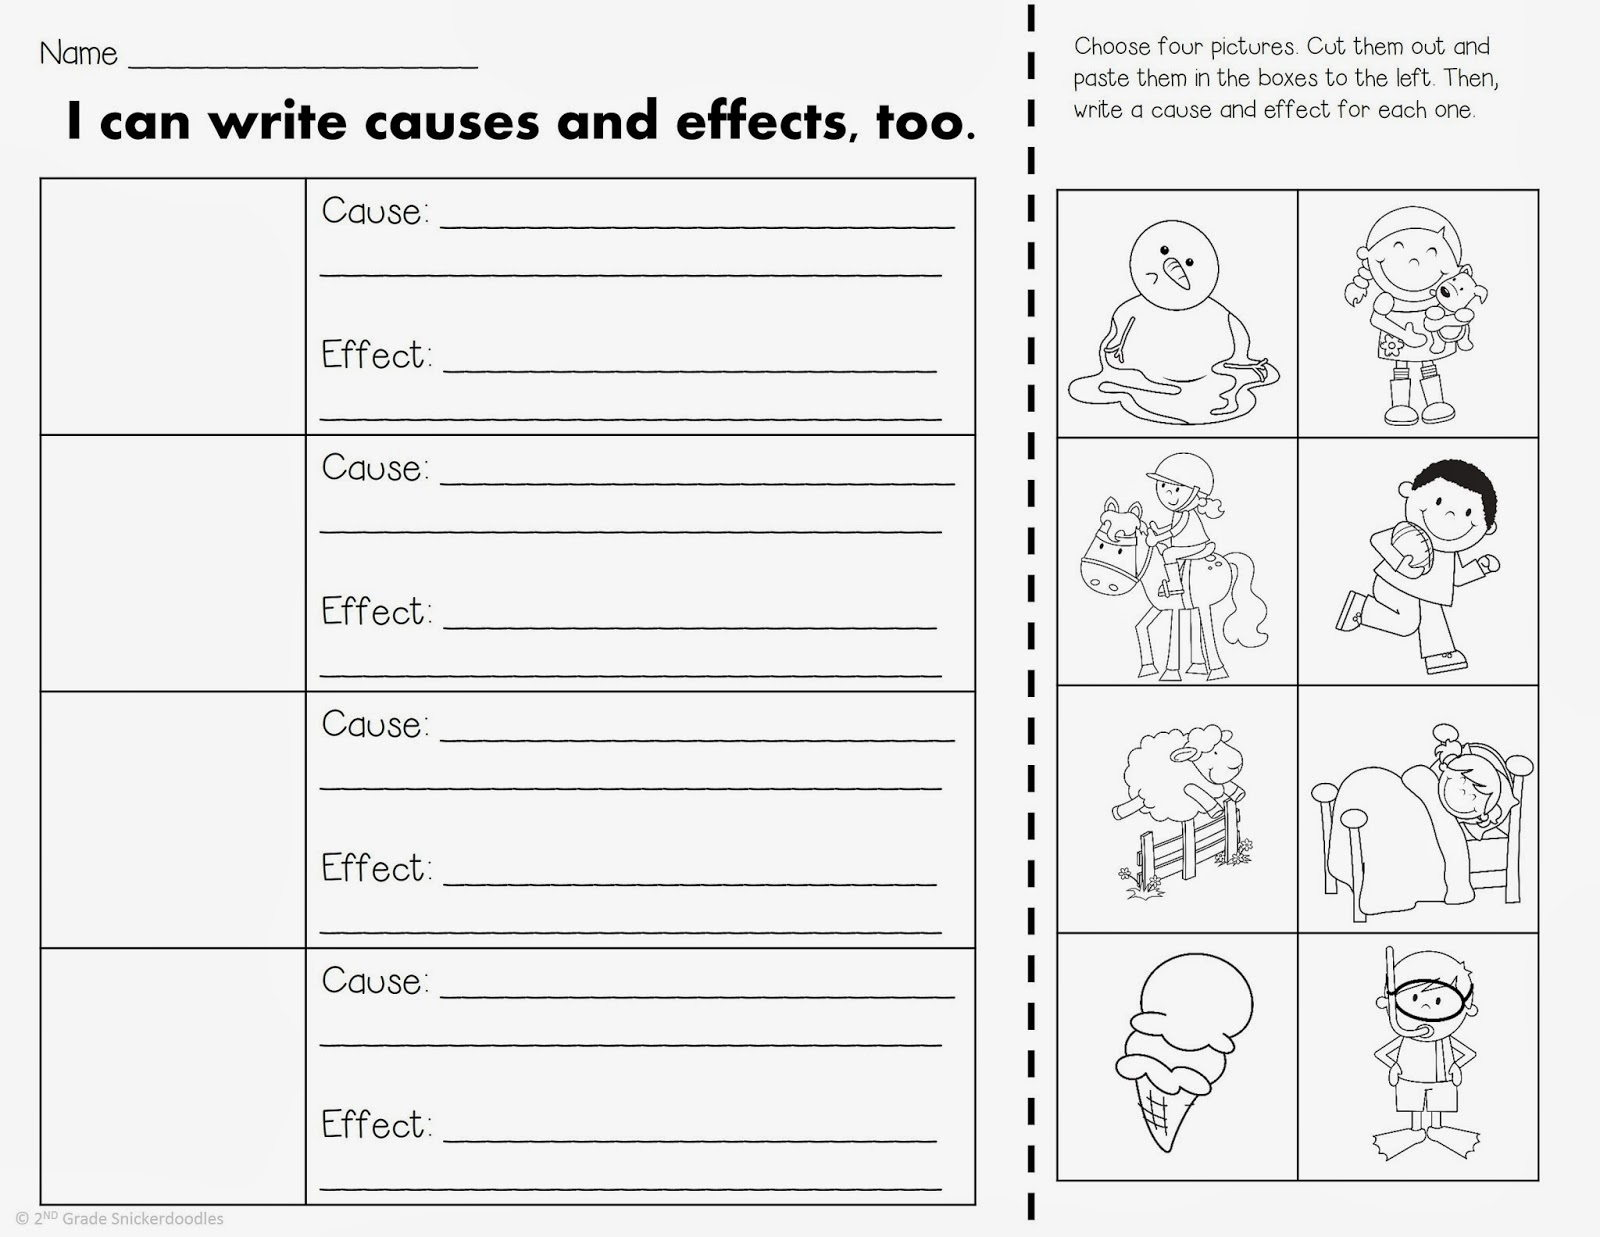 2nd Grade Snickerdoodles March 2014 – Cause and Effect Worksheets 2nd Grade